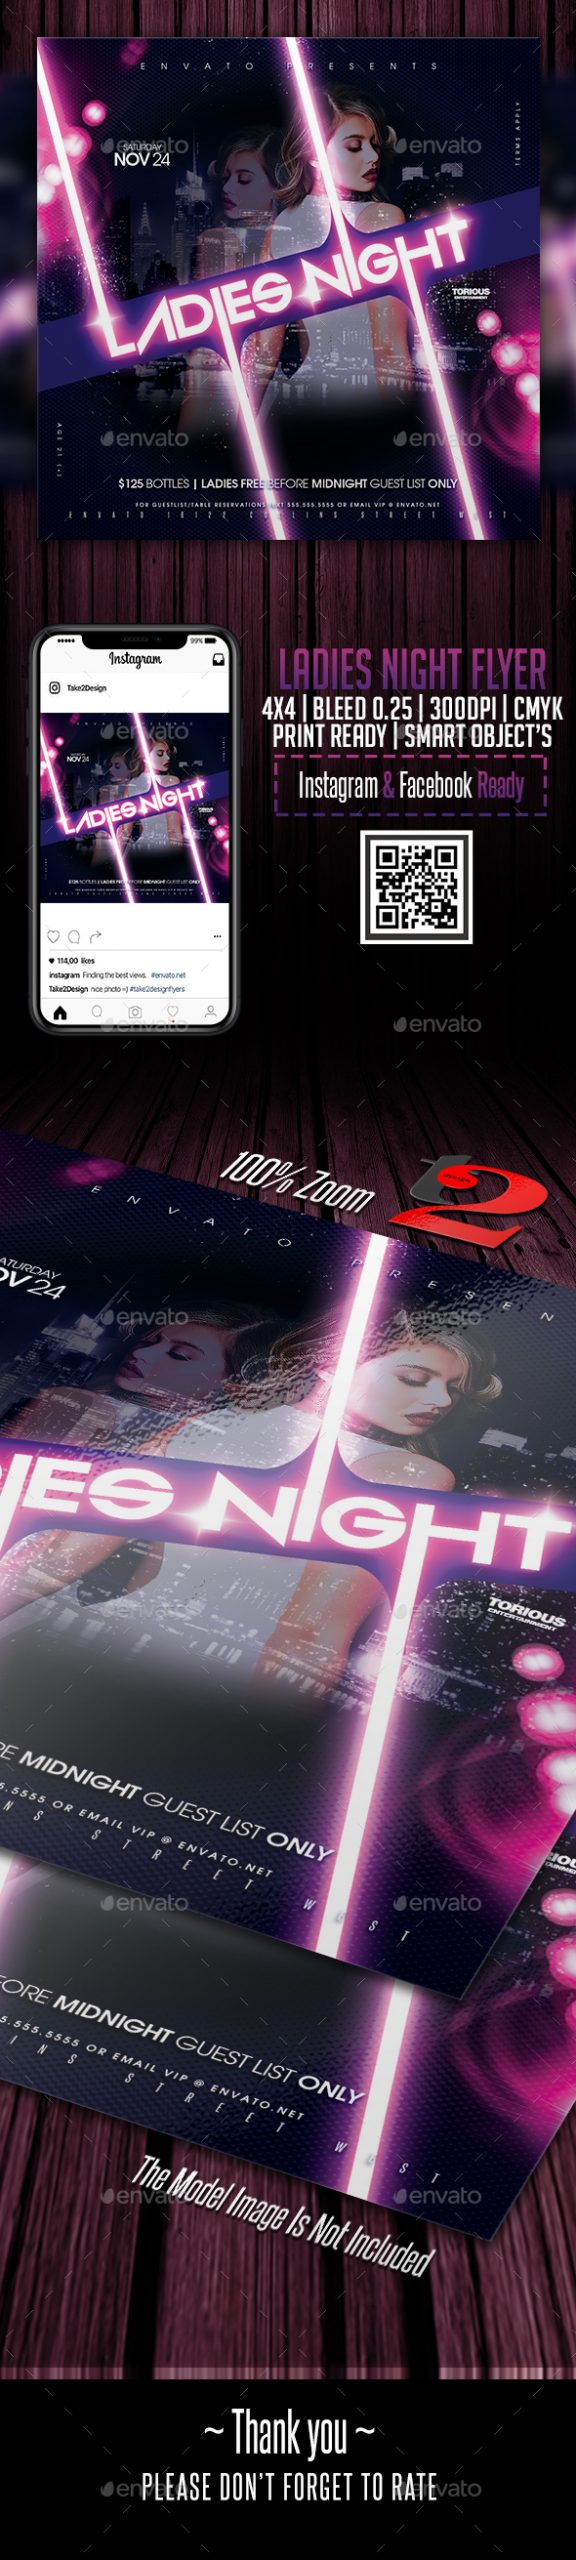 Flyers PSD – Ladies Night time Flyer Template – Download